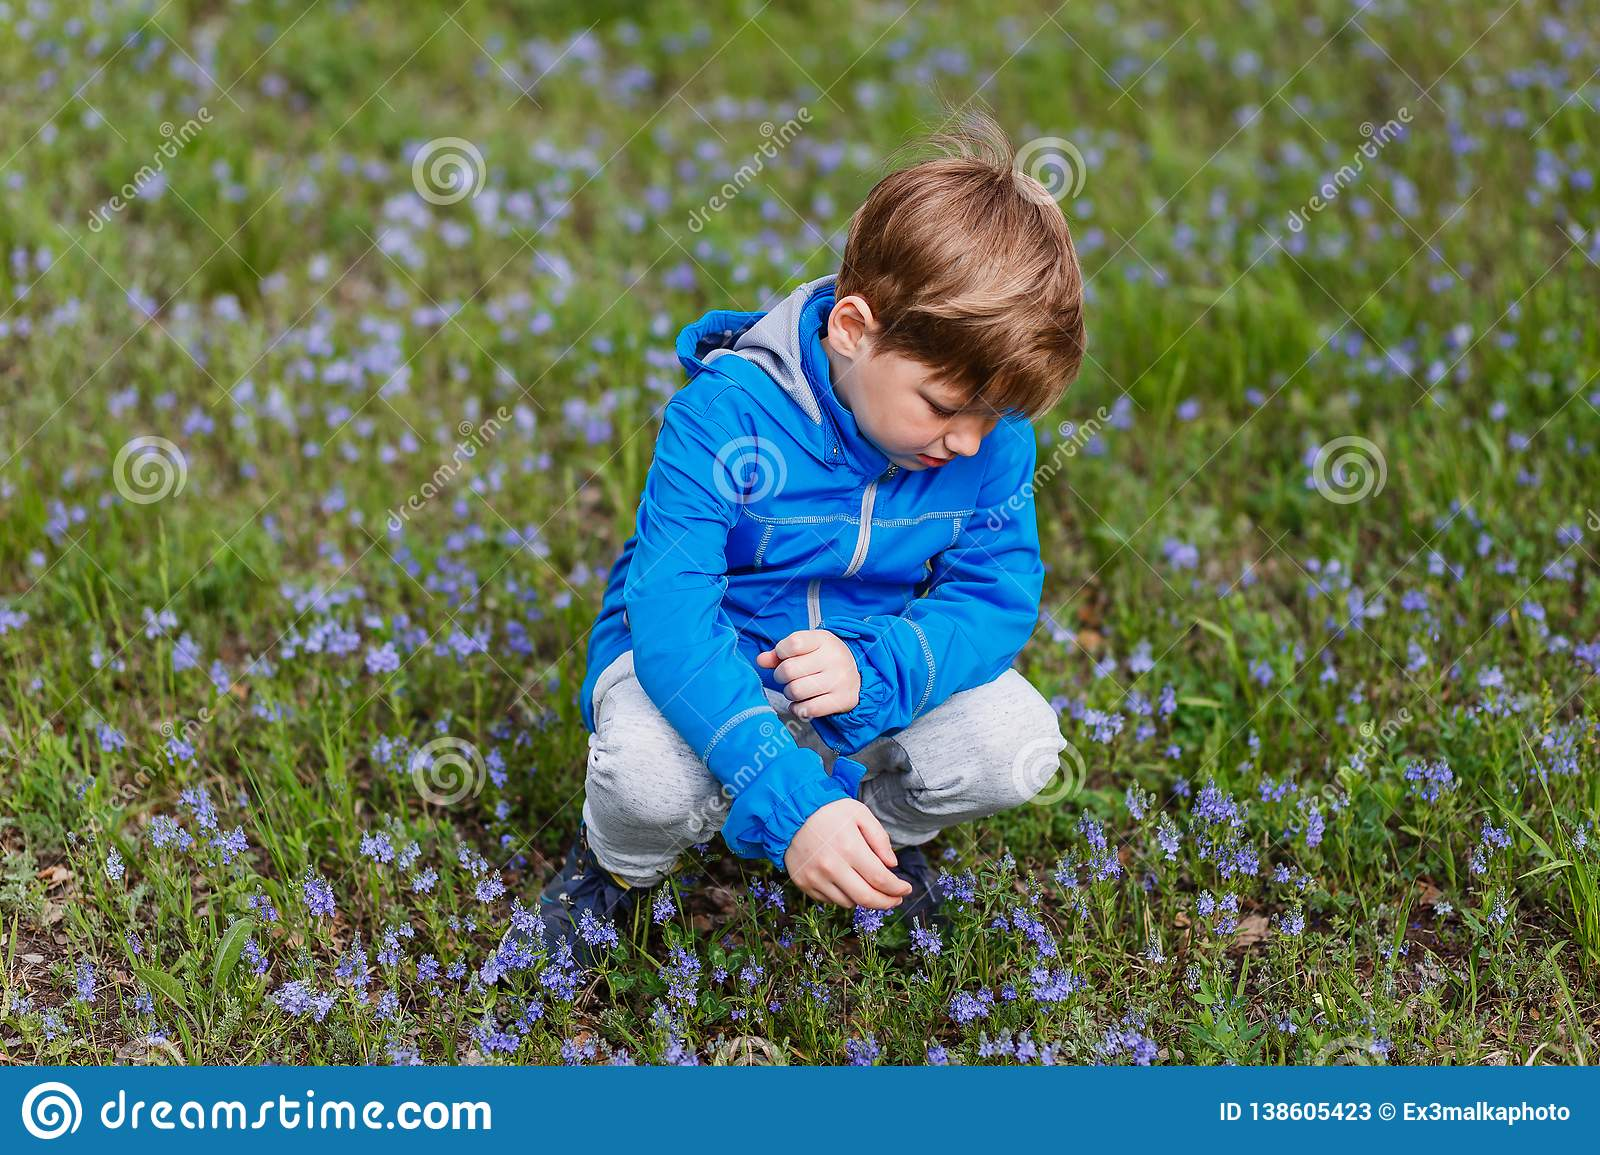 girls-singing-little-flower-in-the-meadow-exercisers-amatuer